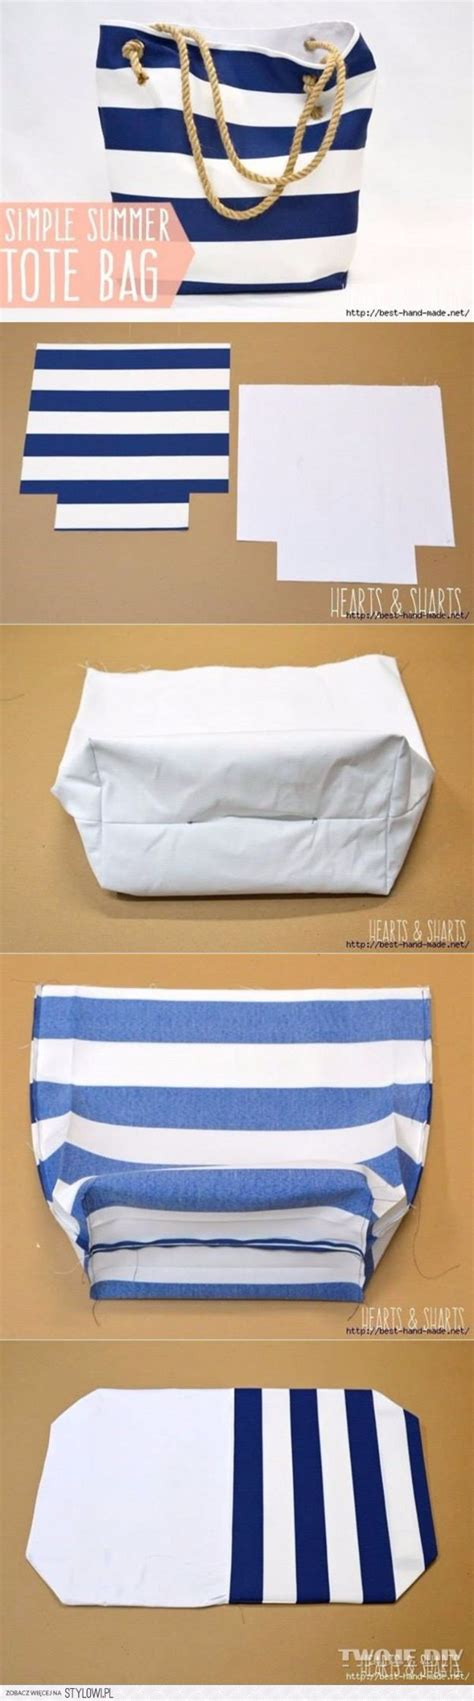 Reversible Boca Bag From Langley Designs by 35 Diy Bags You Can Carry With Pride Diy Projects For